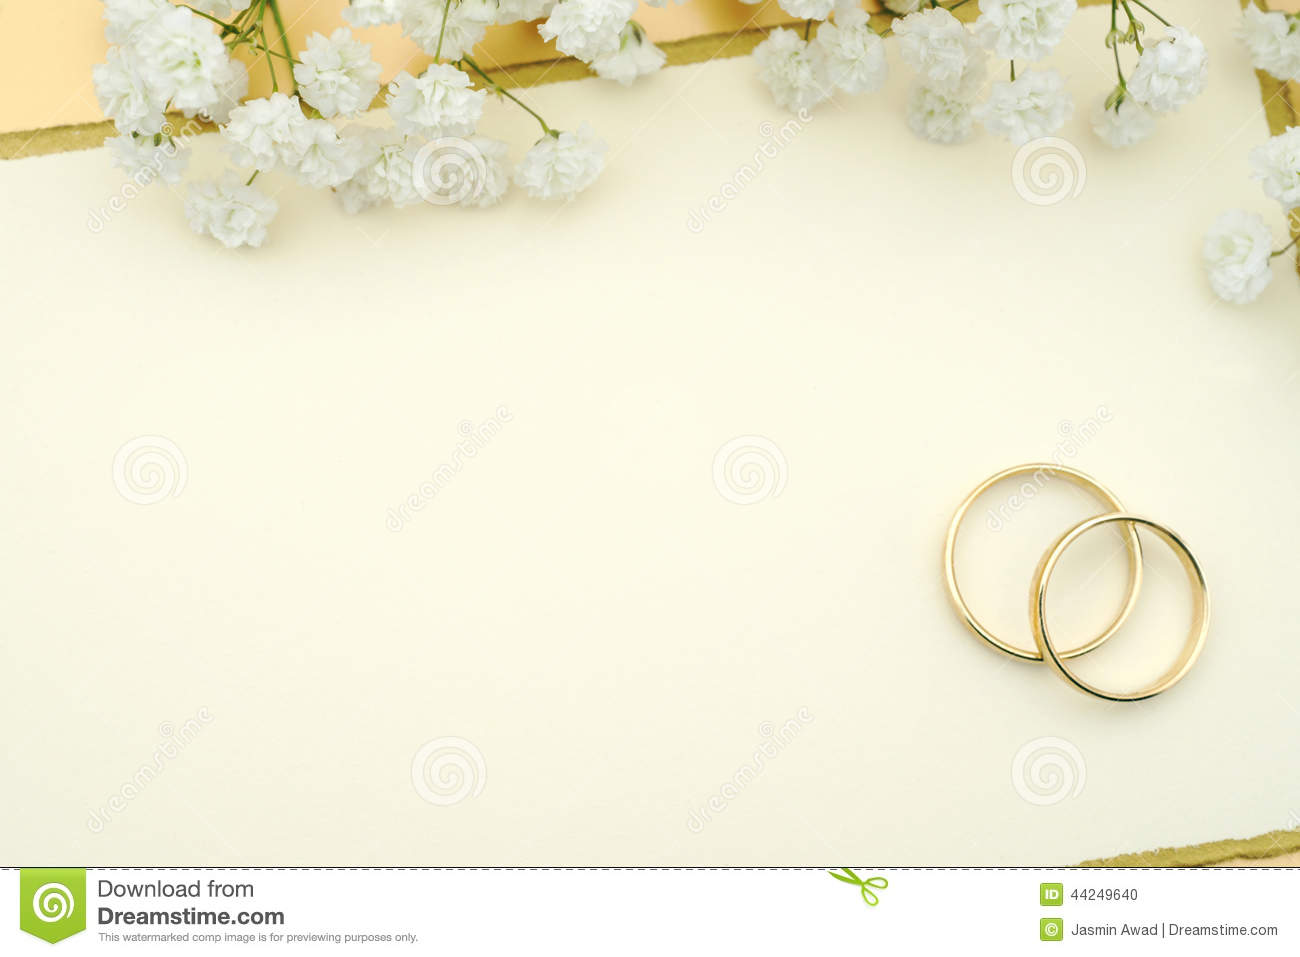 Wedding invitation stock photo. Image of ring, invitation - 44249640